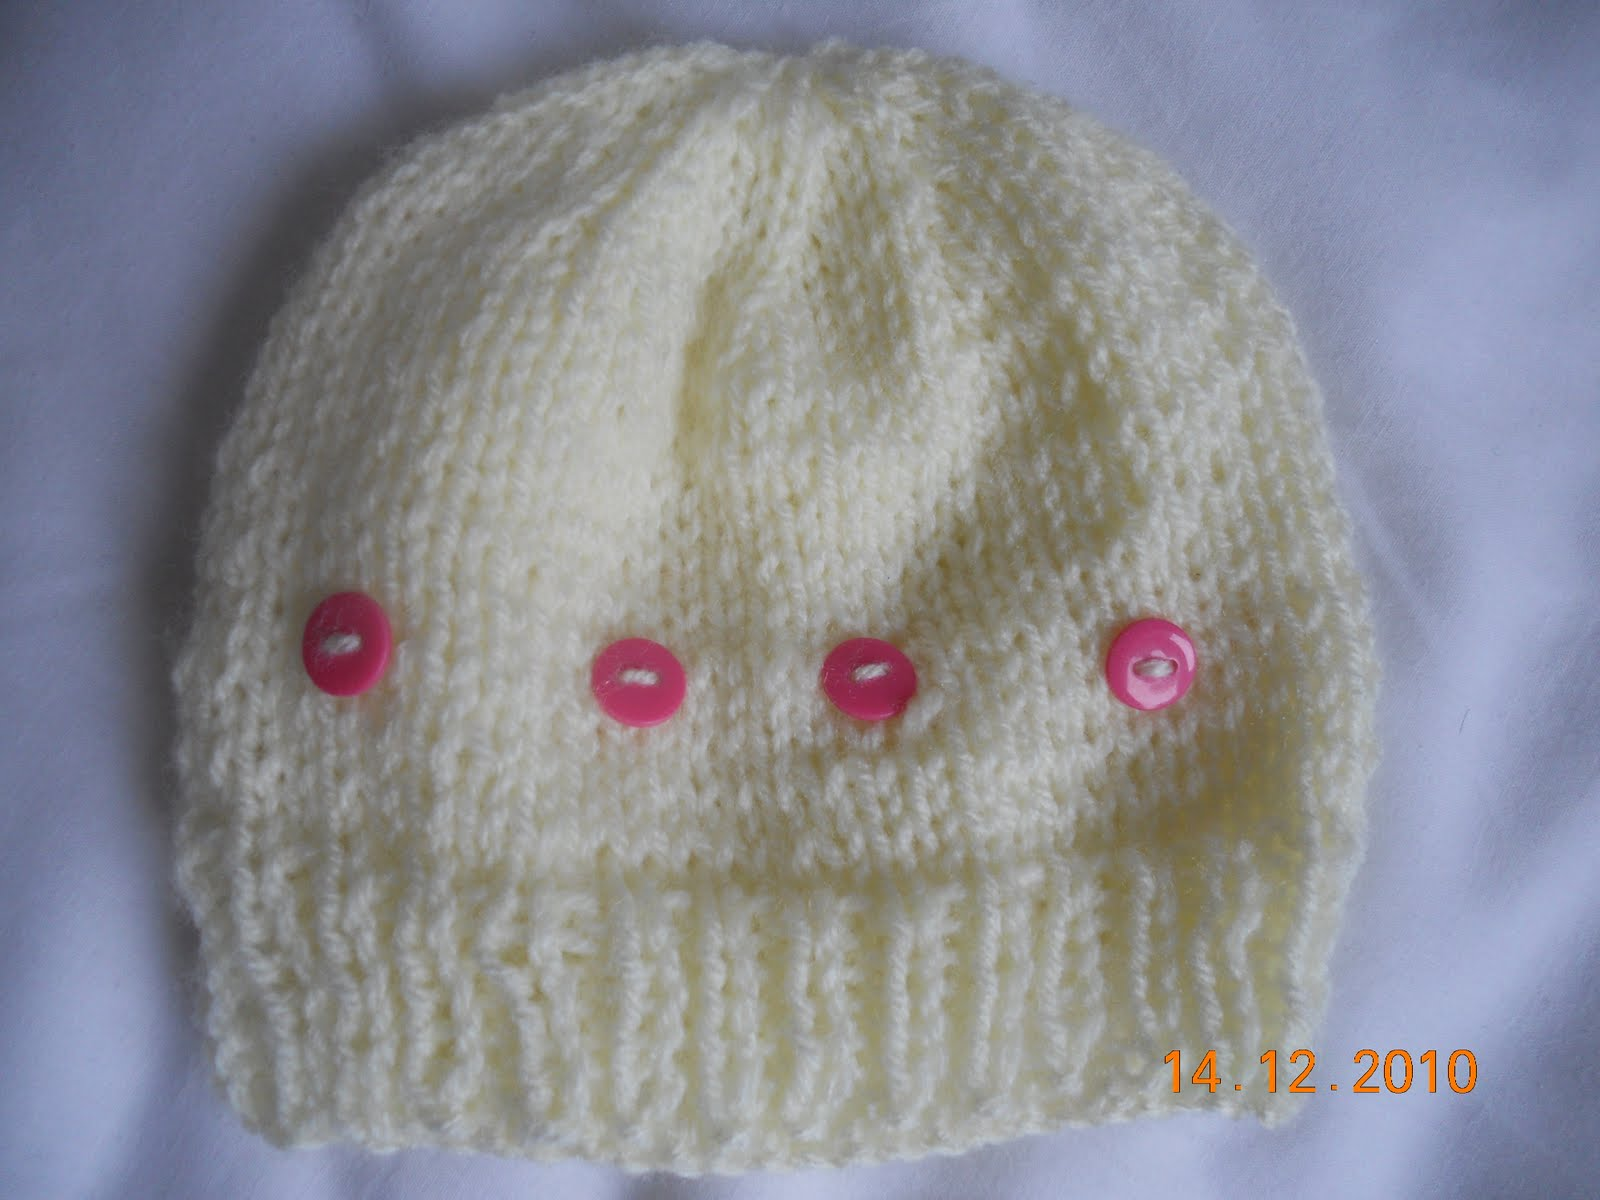 Knitting Hats For Beginners : Simple easy knitting baby hat for beginners sheetal s nook